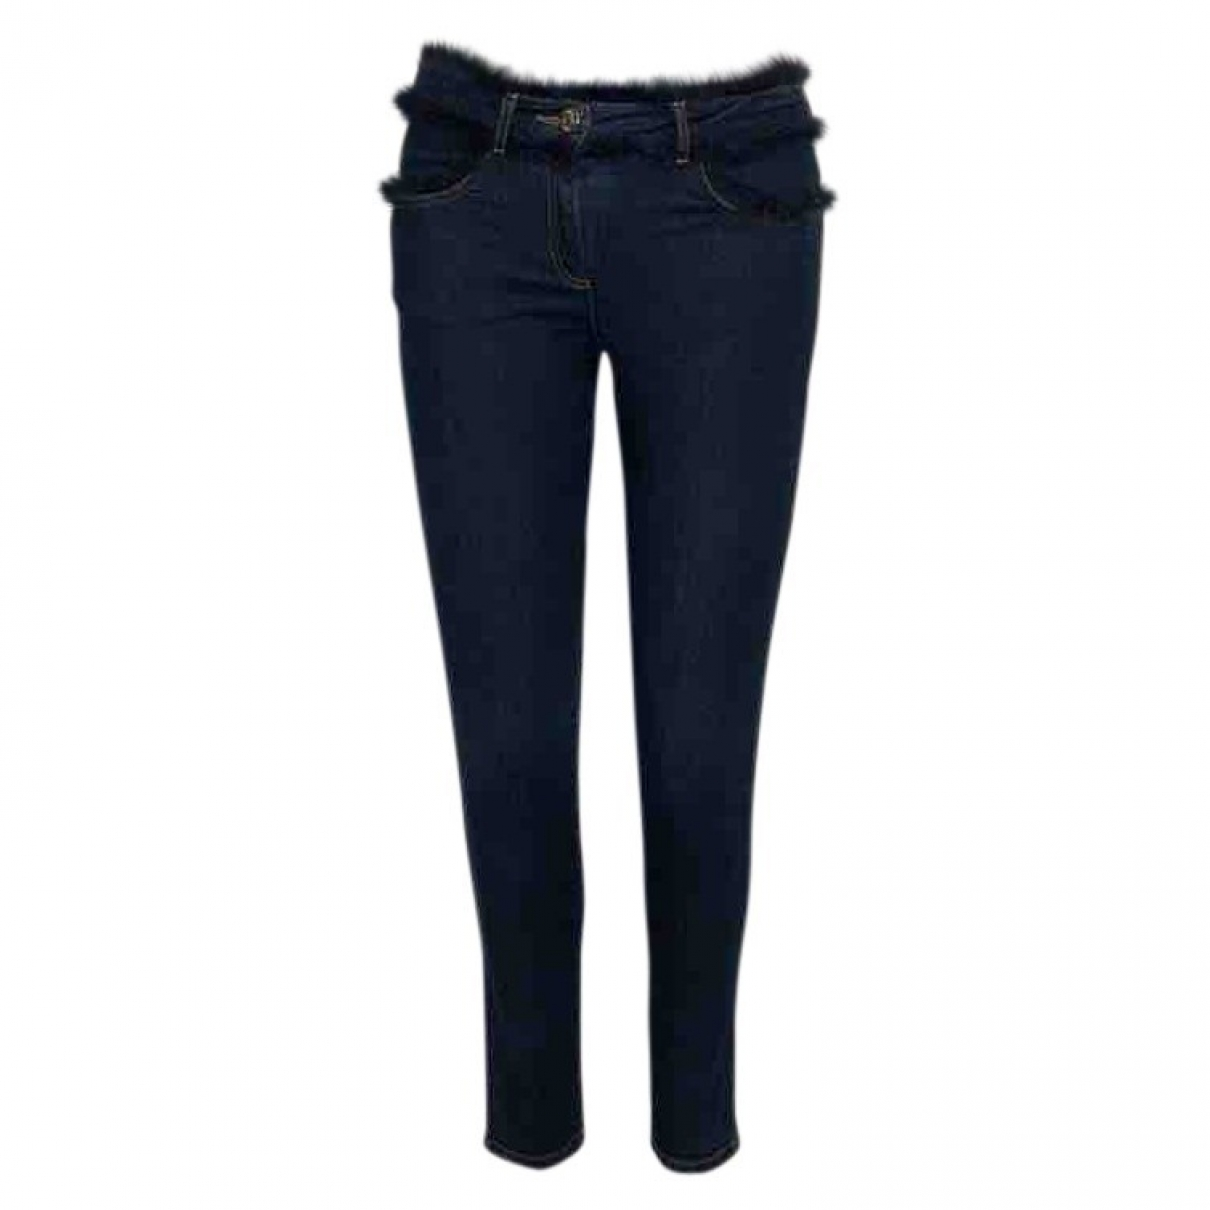 Chloé \N Navy Cotton Trousers for Kids 14 years - S UK